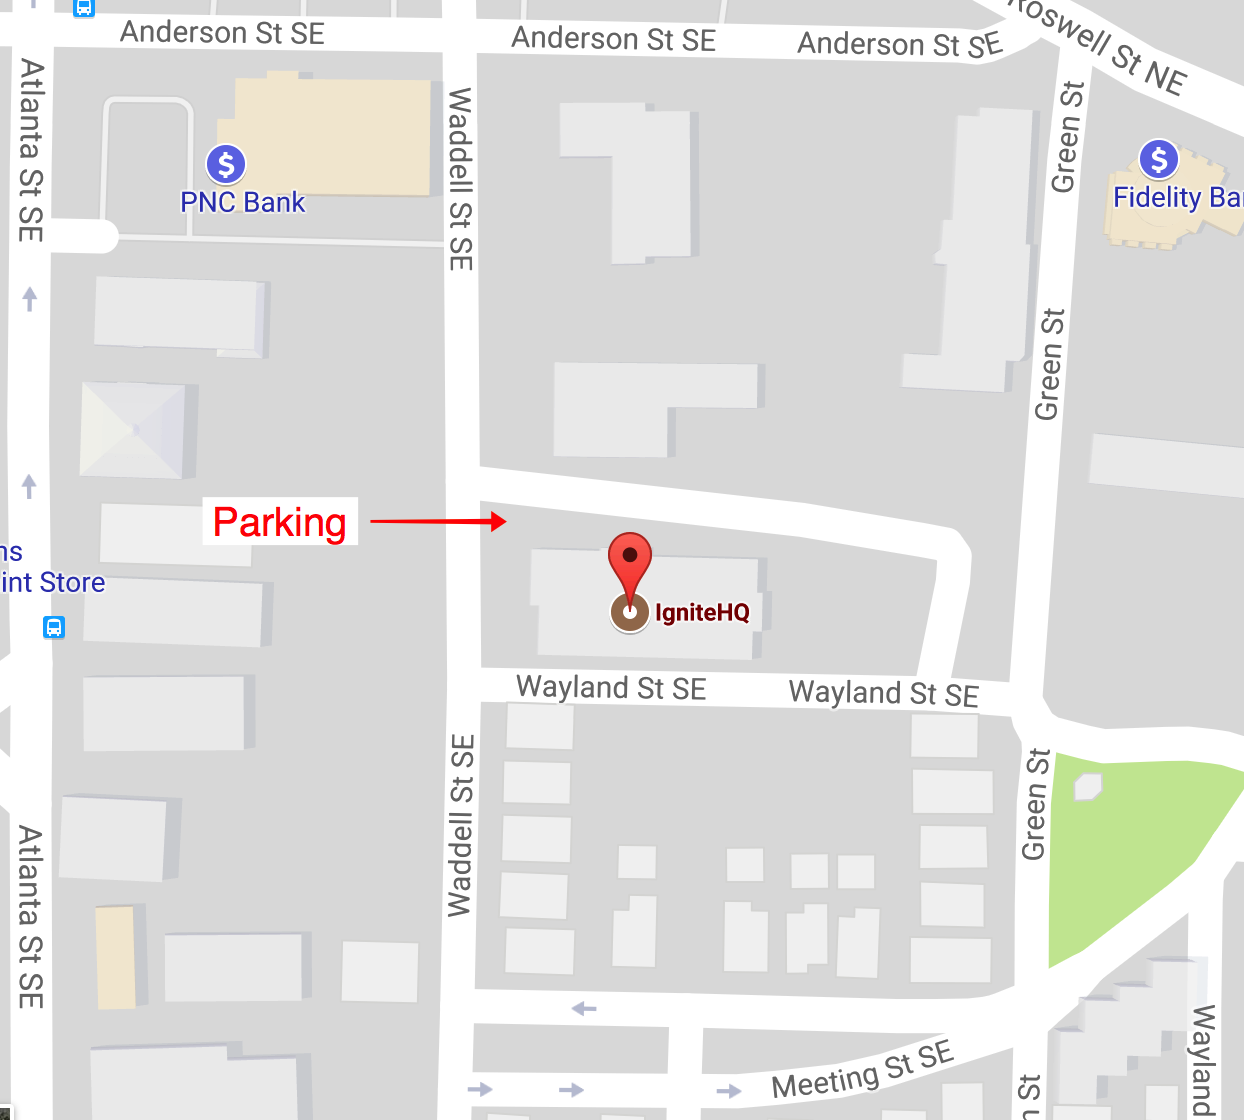 How To Find Us Ignitehq Is A Standalone Building There Is A Free Parking Lot Behind It When You Arrive You Can Check In And Make Your Way To The